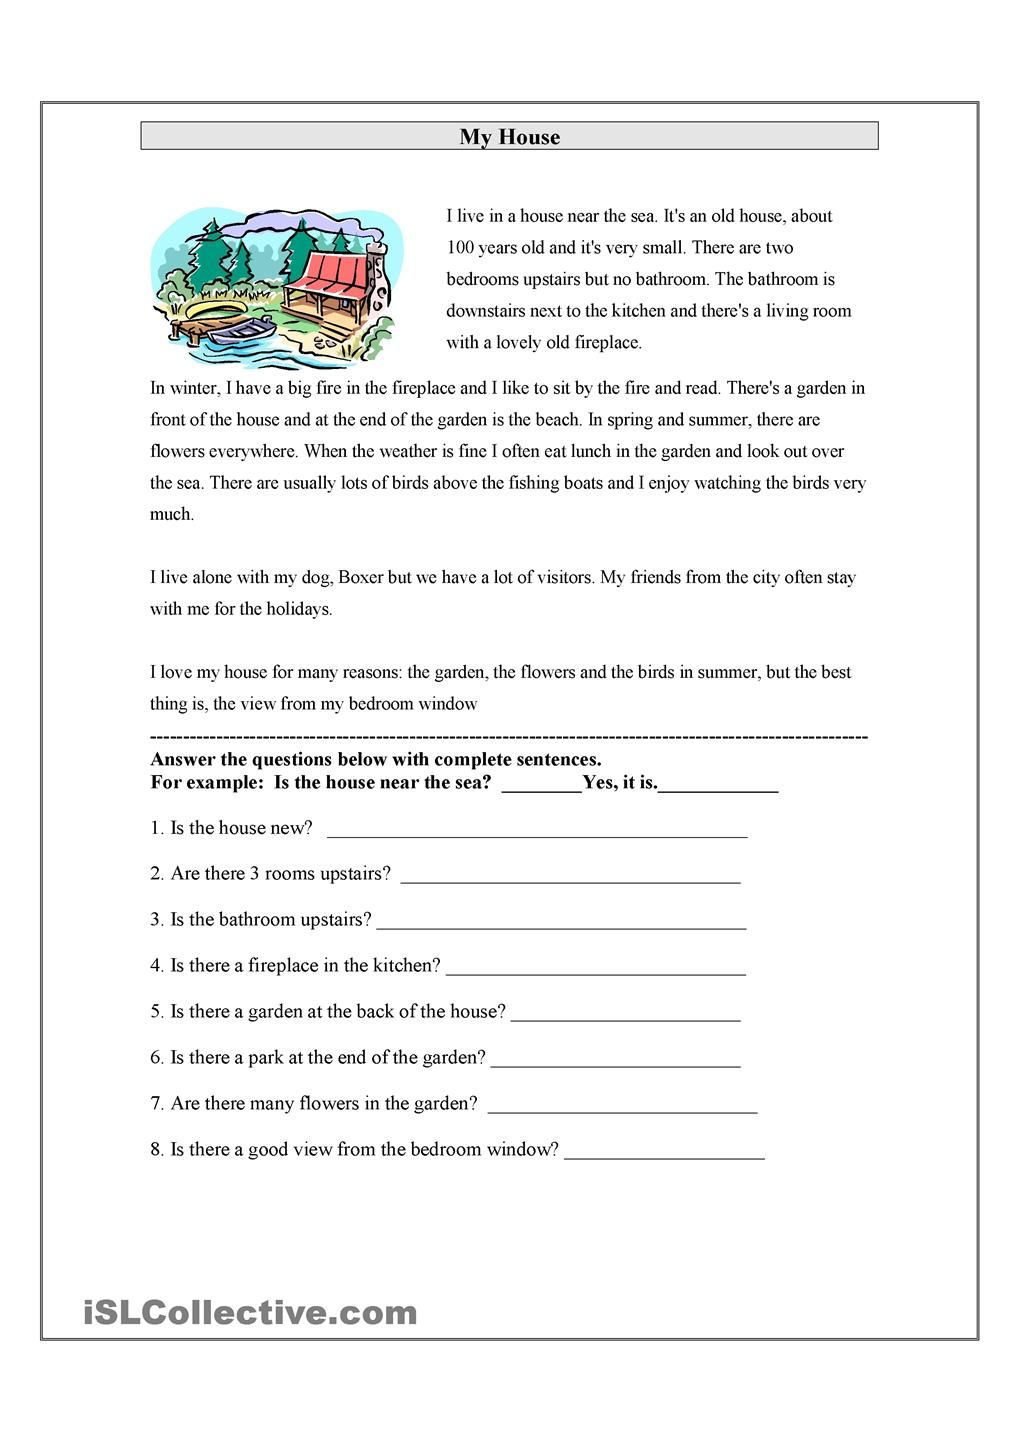 My House Reading Comprehension Worksheets First Grade Reading Comprehension Reading Worksheets [ 1440 x 1018 Pixel ]